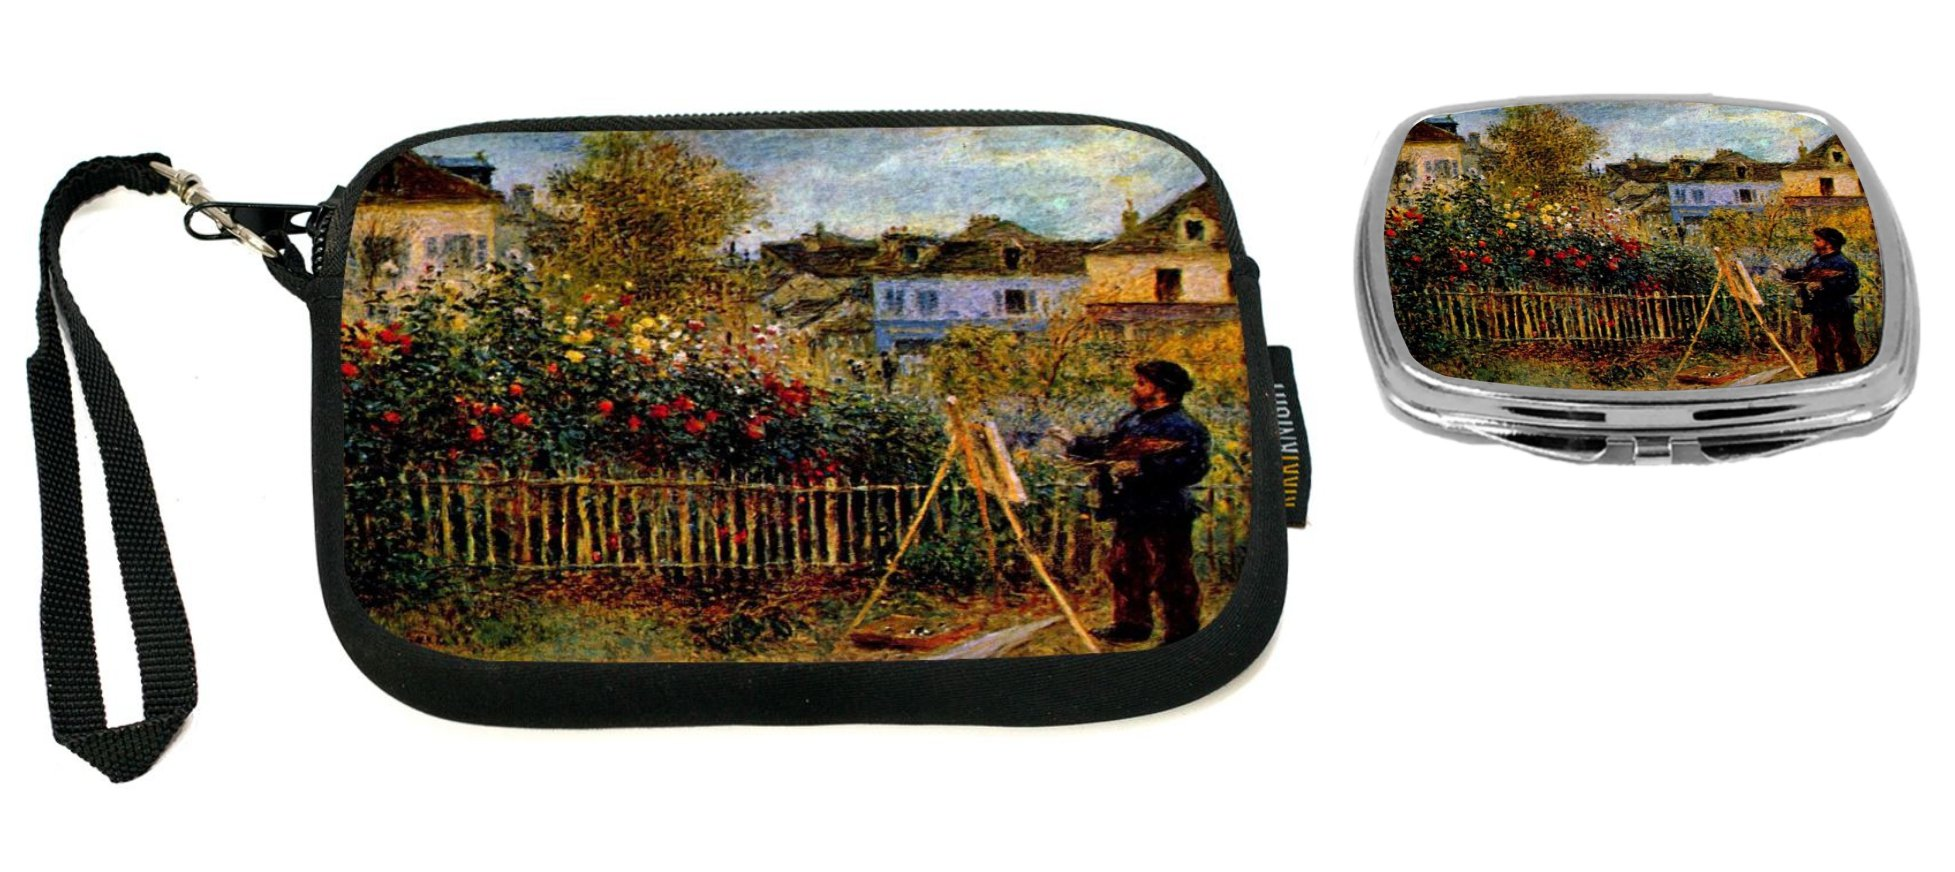 Rikki Knight Monet Painting in his Garden Design Neoprene Clutch Wristlet with Matching Square Compact Mirror